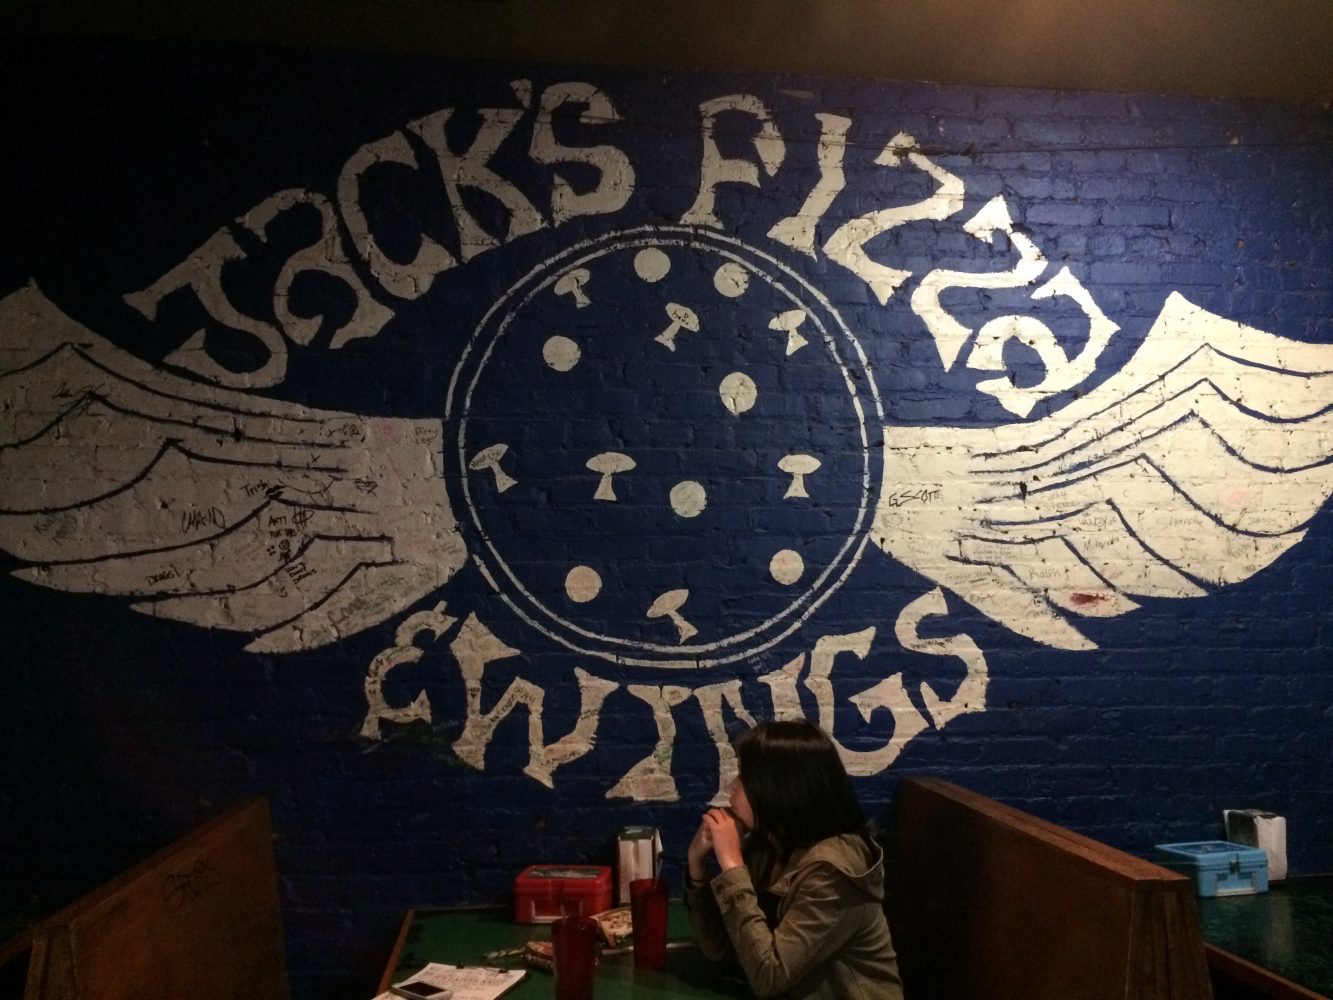 QFTB: Jacks Pizza and Wings slices the competition